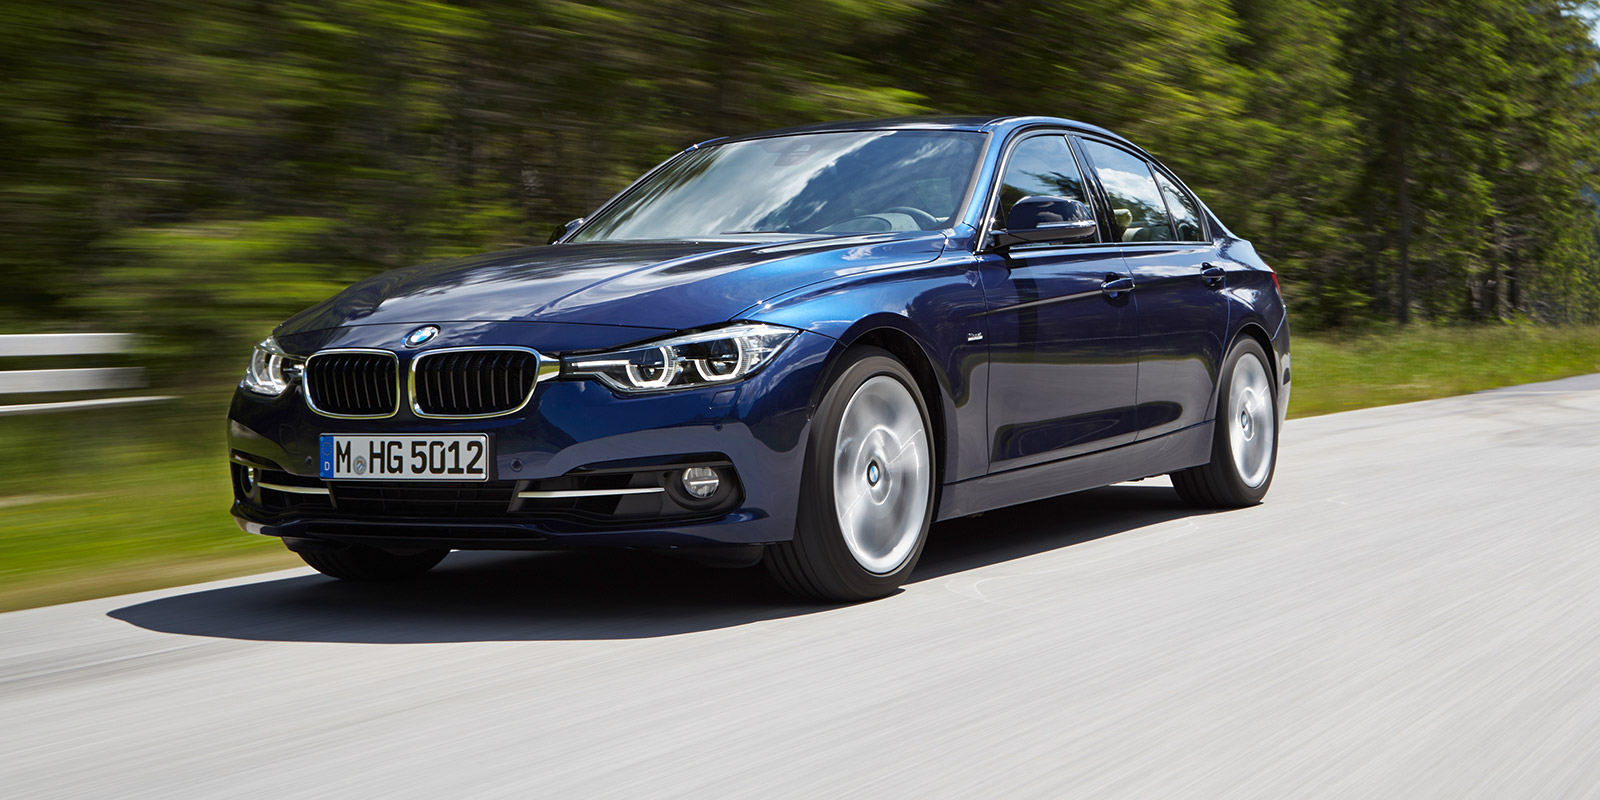 Bmw 3 Series Uk Sizes And Dimensions Guide Carwow